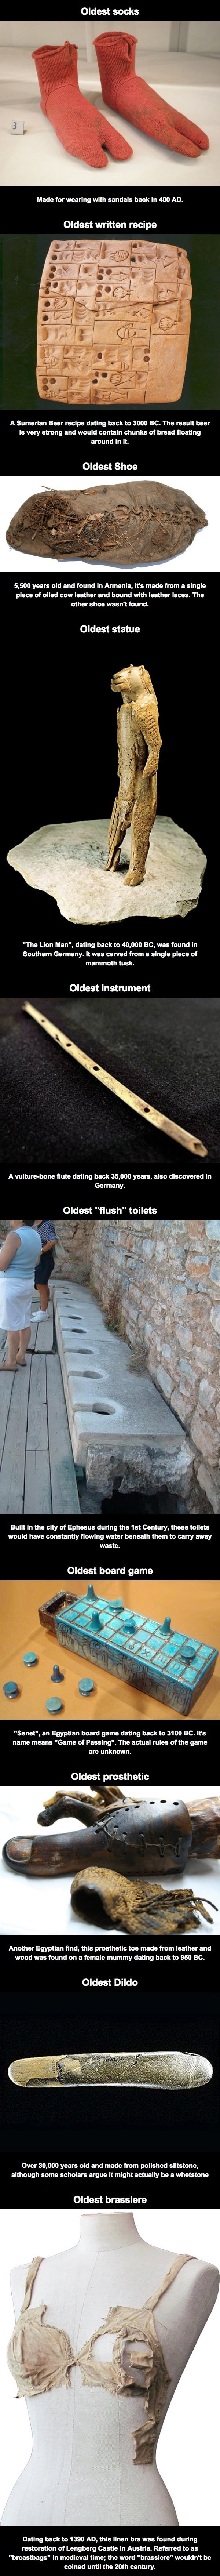 Oldest ordinary things